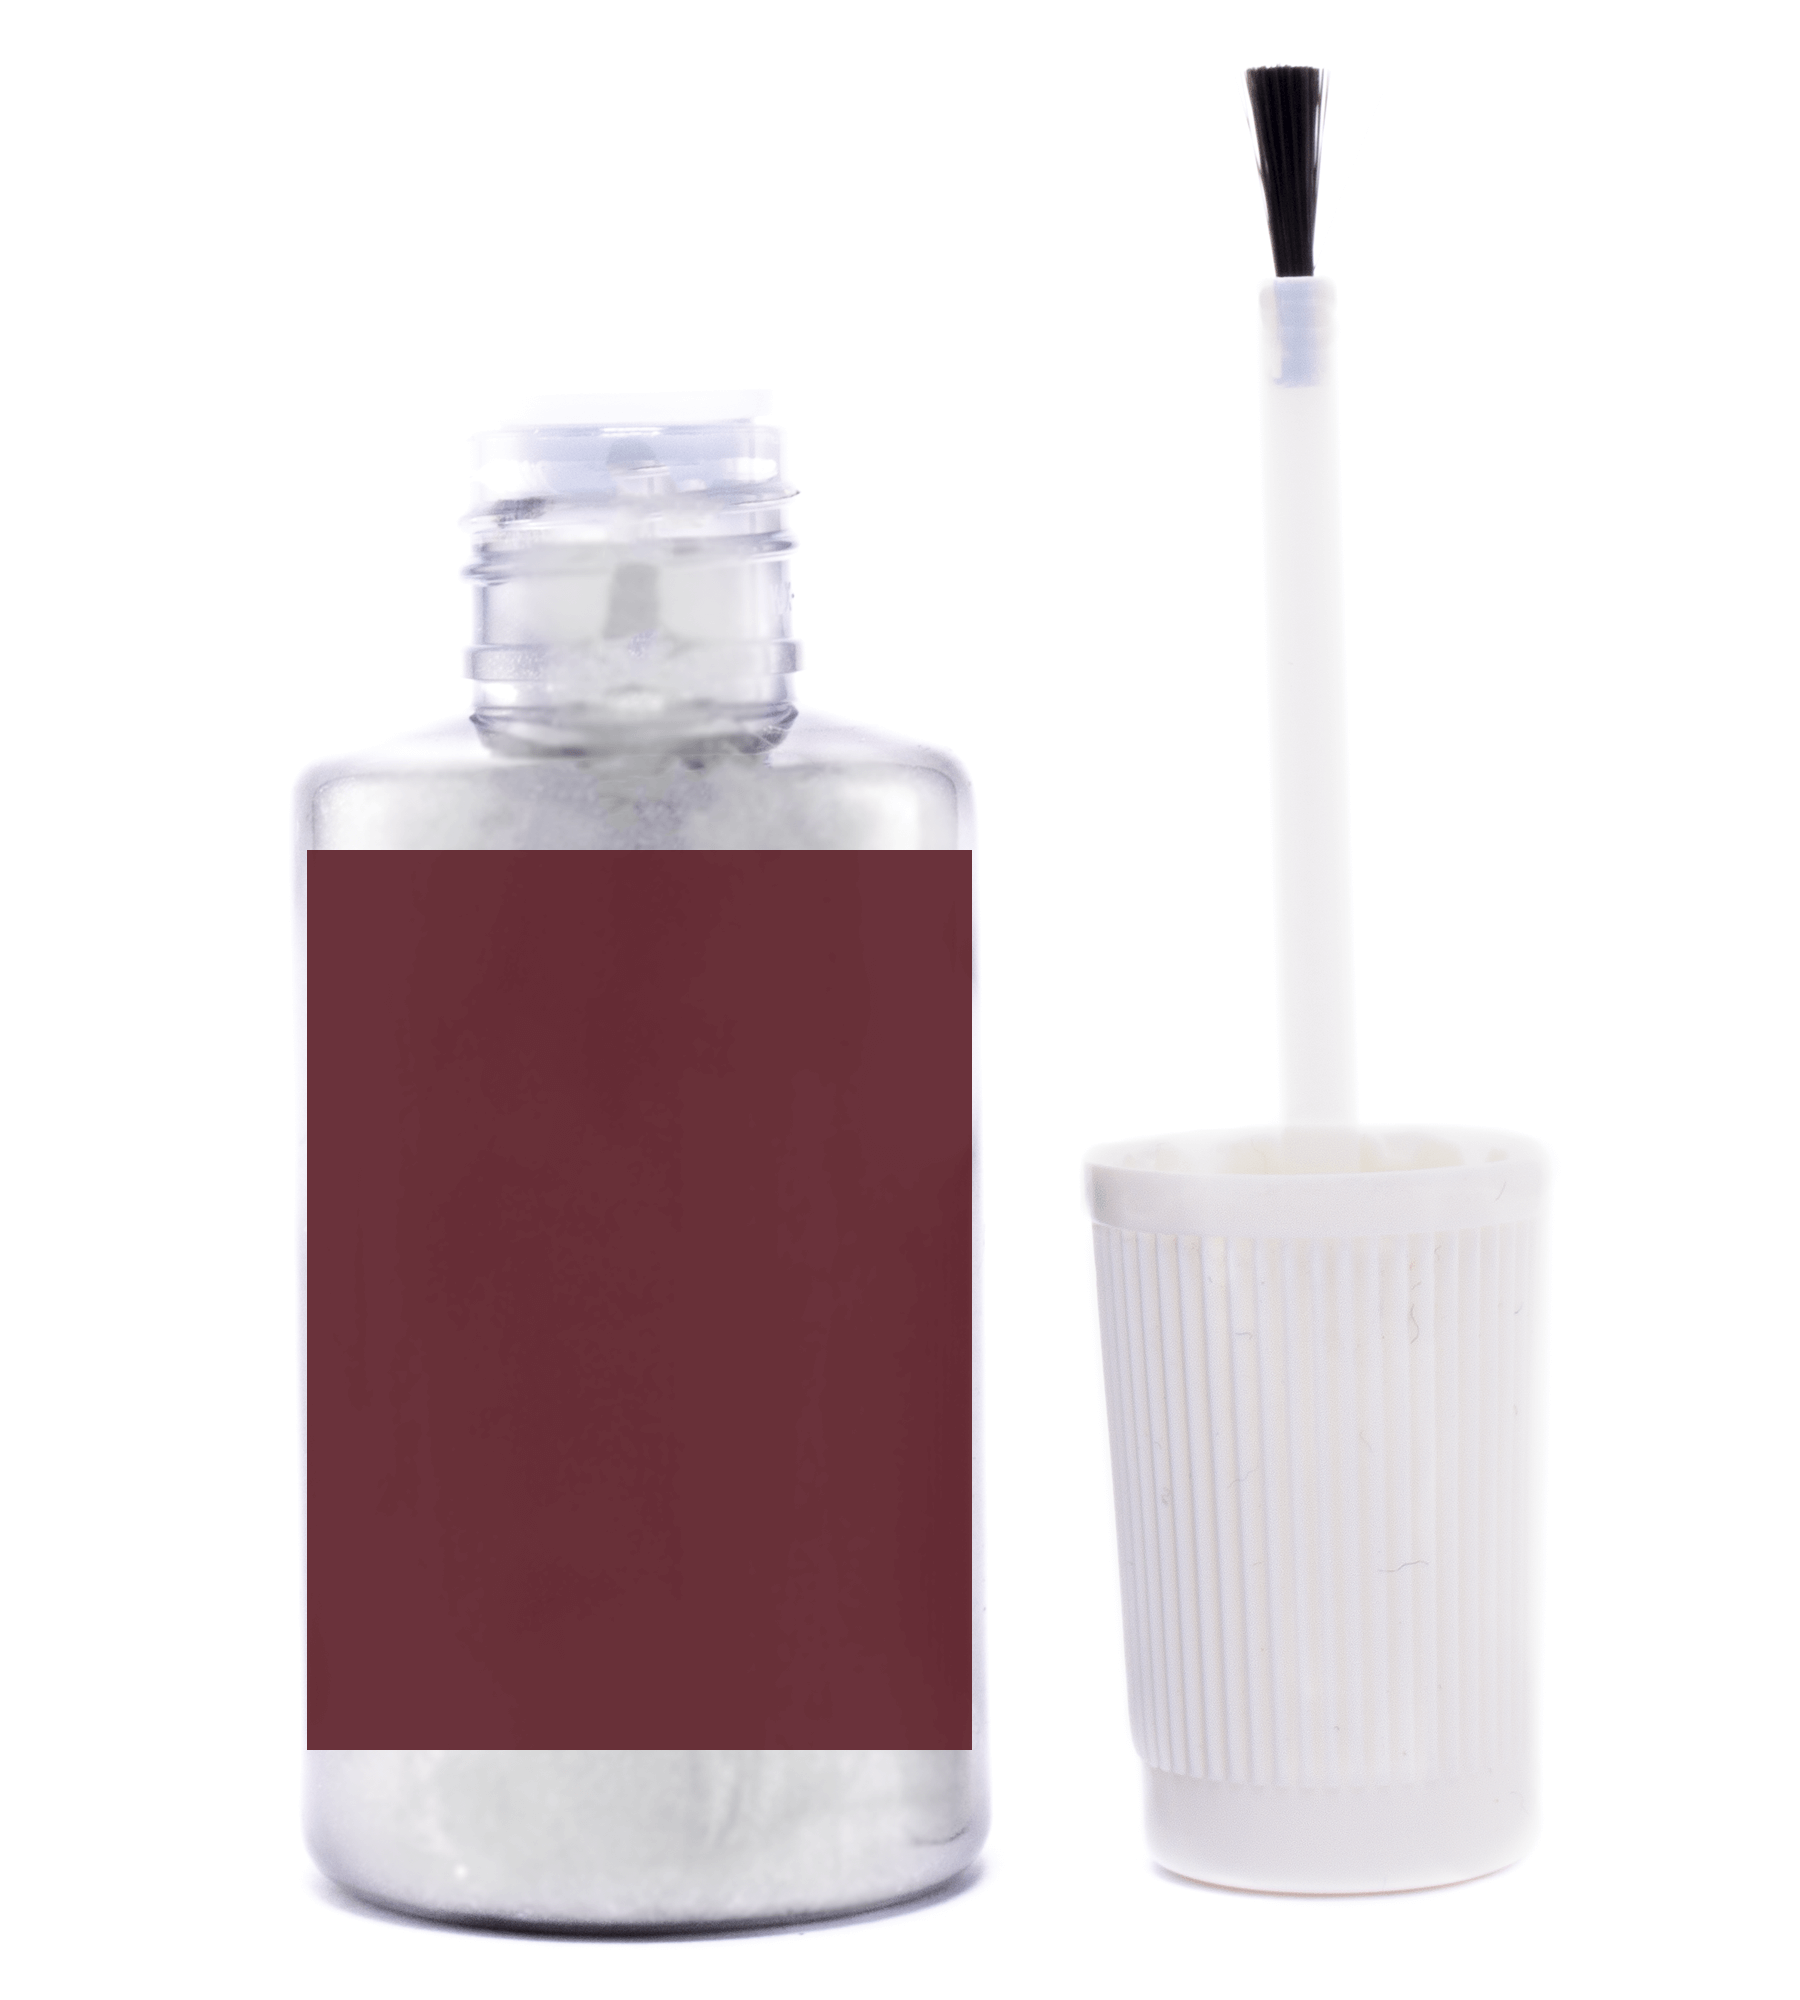 RAL 3005 Wine red Lackstift